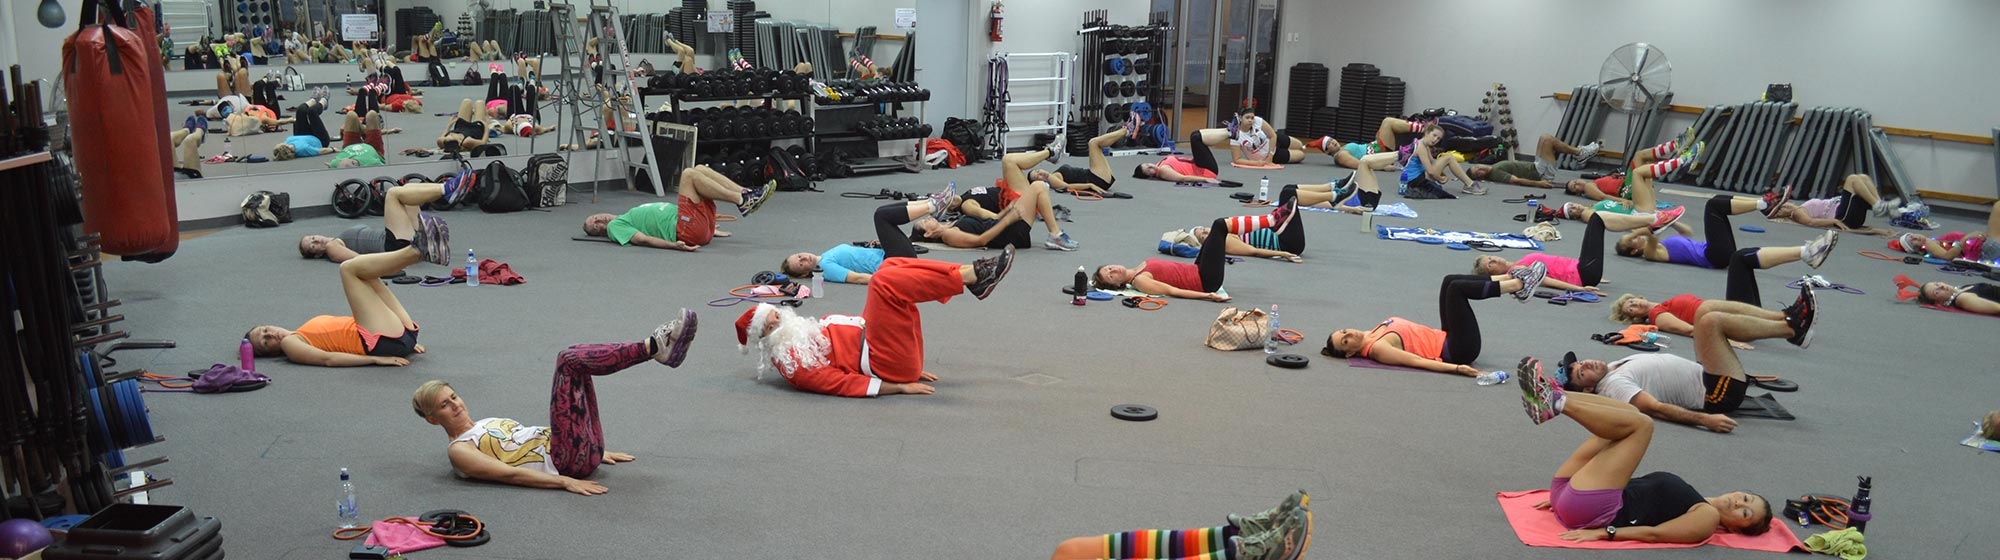 fitness classes darwin